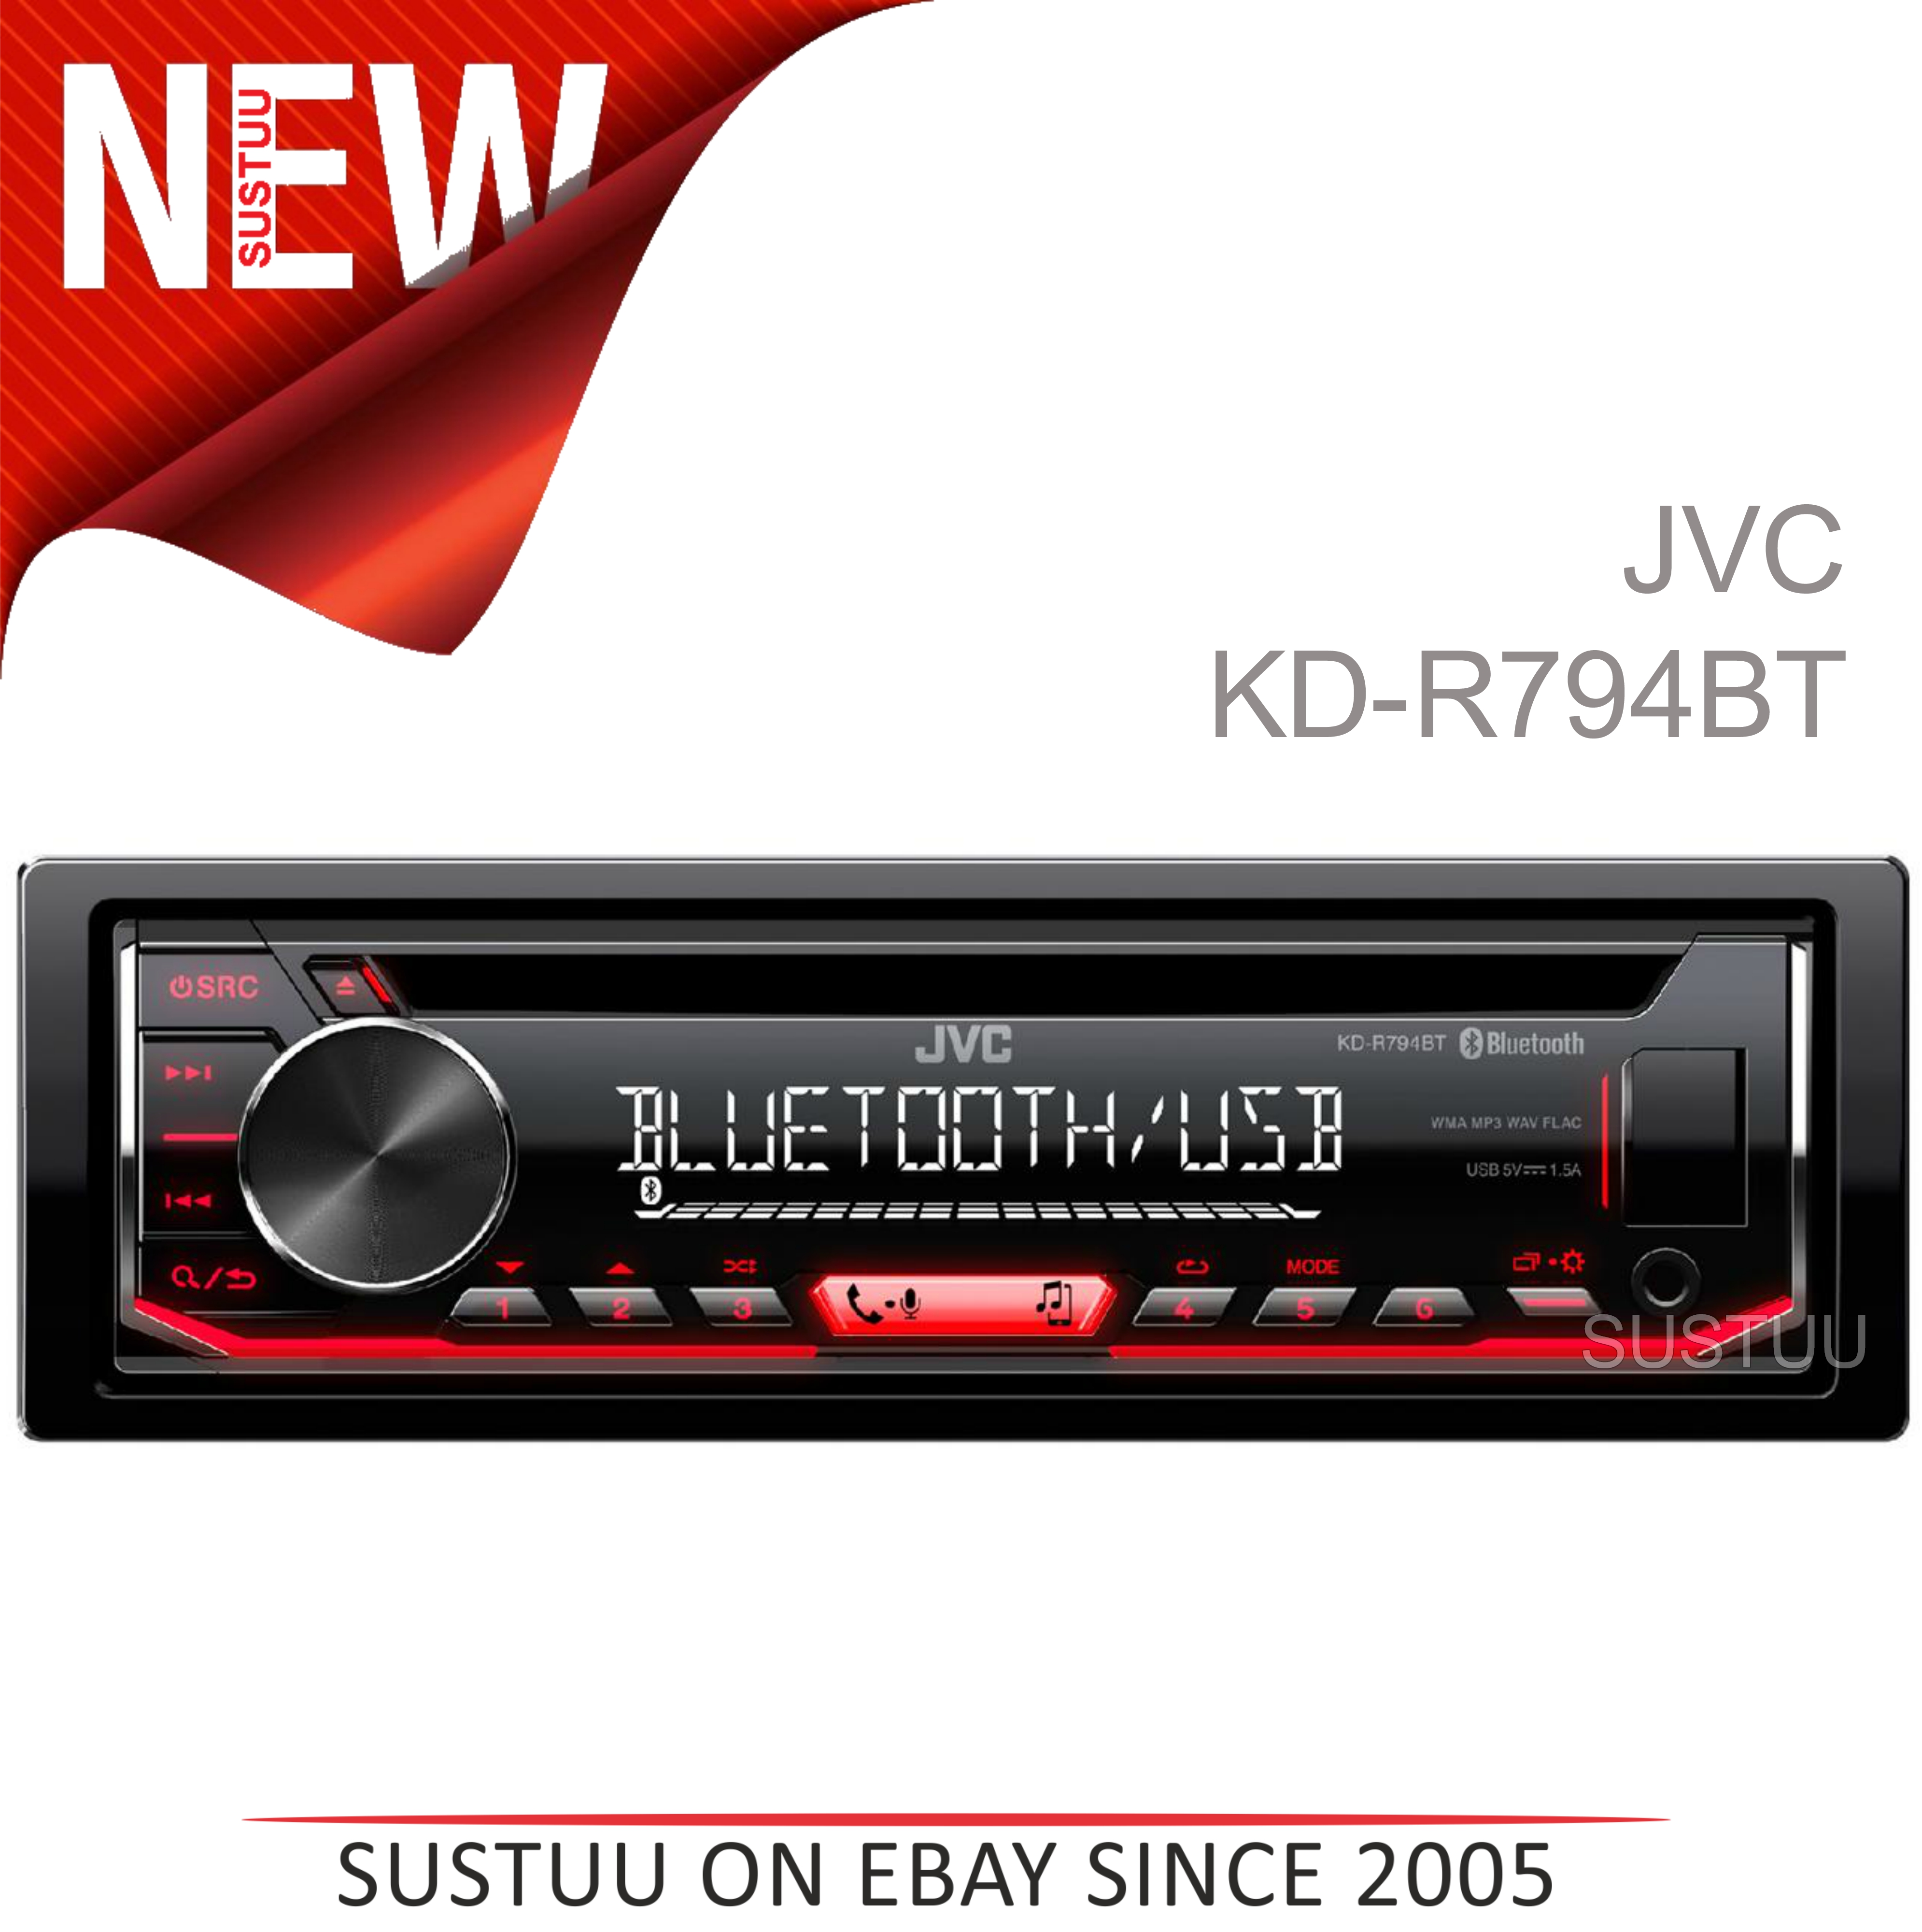 Sentinel JVC Car Stereo│Radio│CD│MP3│USB│AUX│Bluetooth│